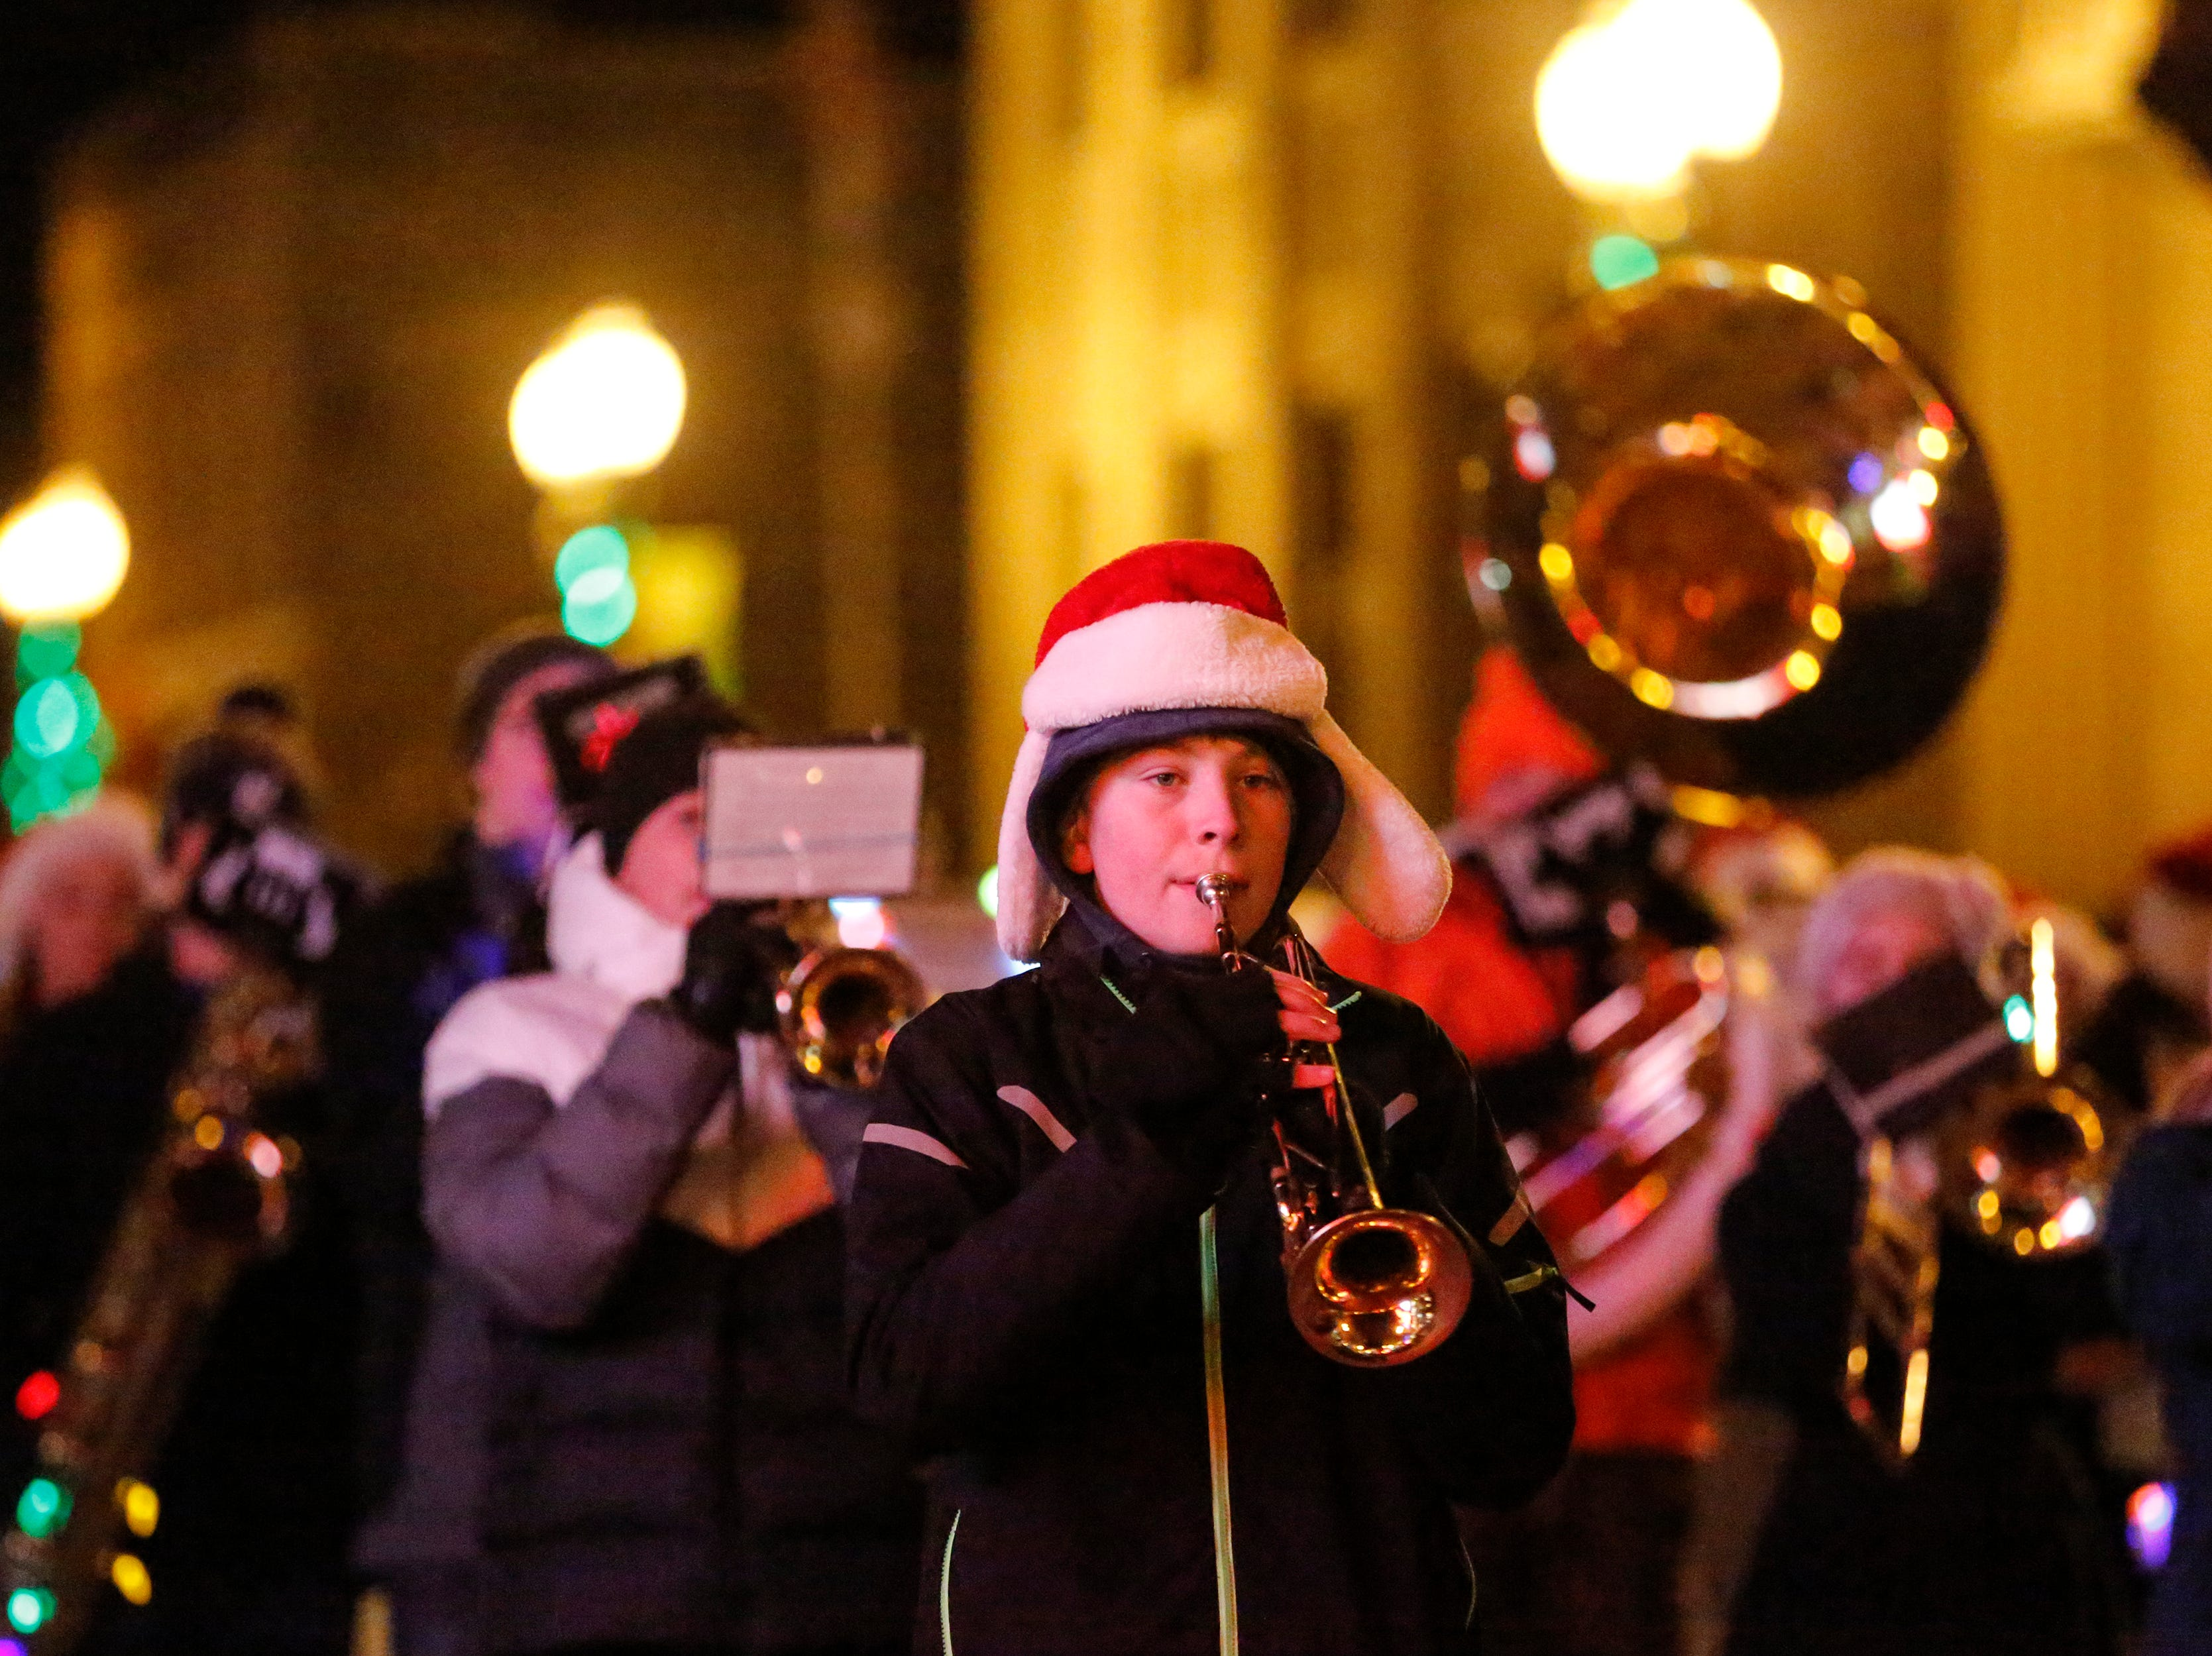 """The Roncalli marching band plays during the 30th Annual Lakeshore Holiday Parade Wednesday, November 21, 2018, in Manitowoc, Wis. This year's theme was """"Christmas Through the Decades."""" Joshua Clark/USA TODAY NETWORK-Wisconsin"""